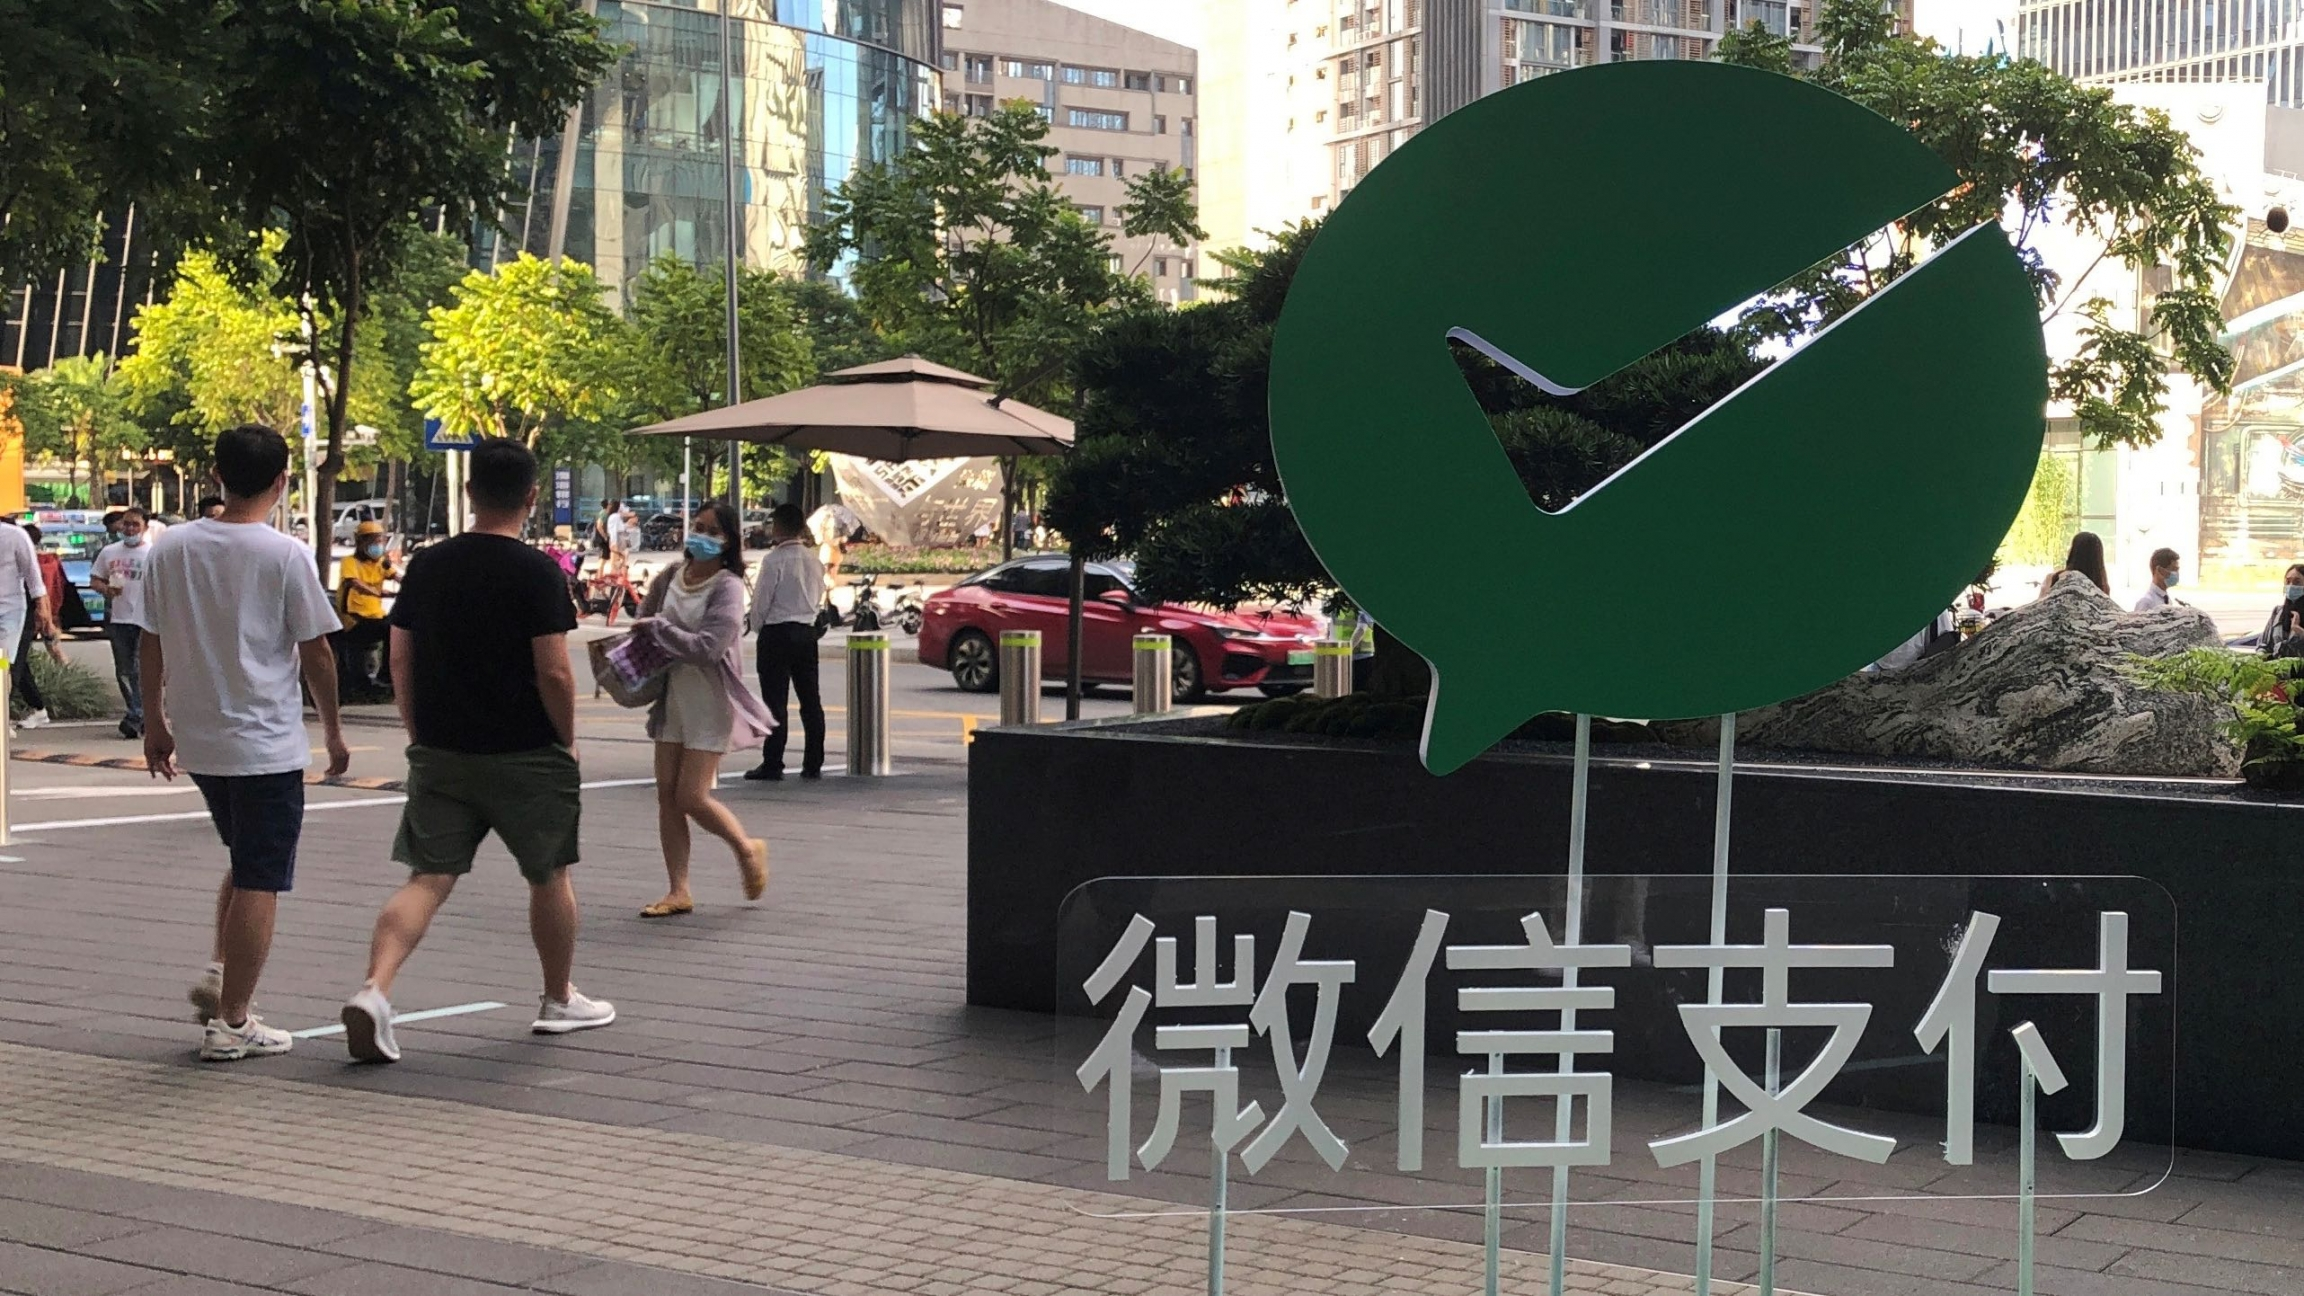 People walk past a Wechat Pay sign at the Tencent company headquarters in Shenzhen, Guangdong province, China, Aug. 7, 2020.